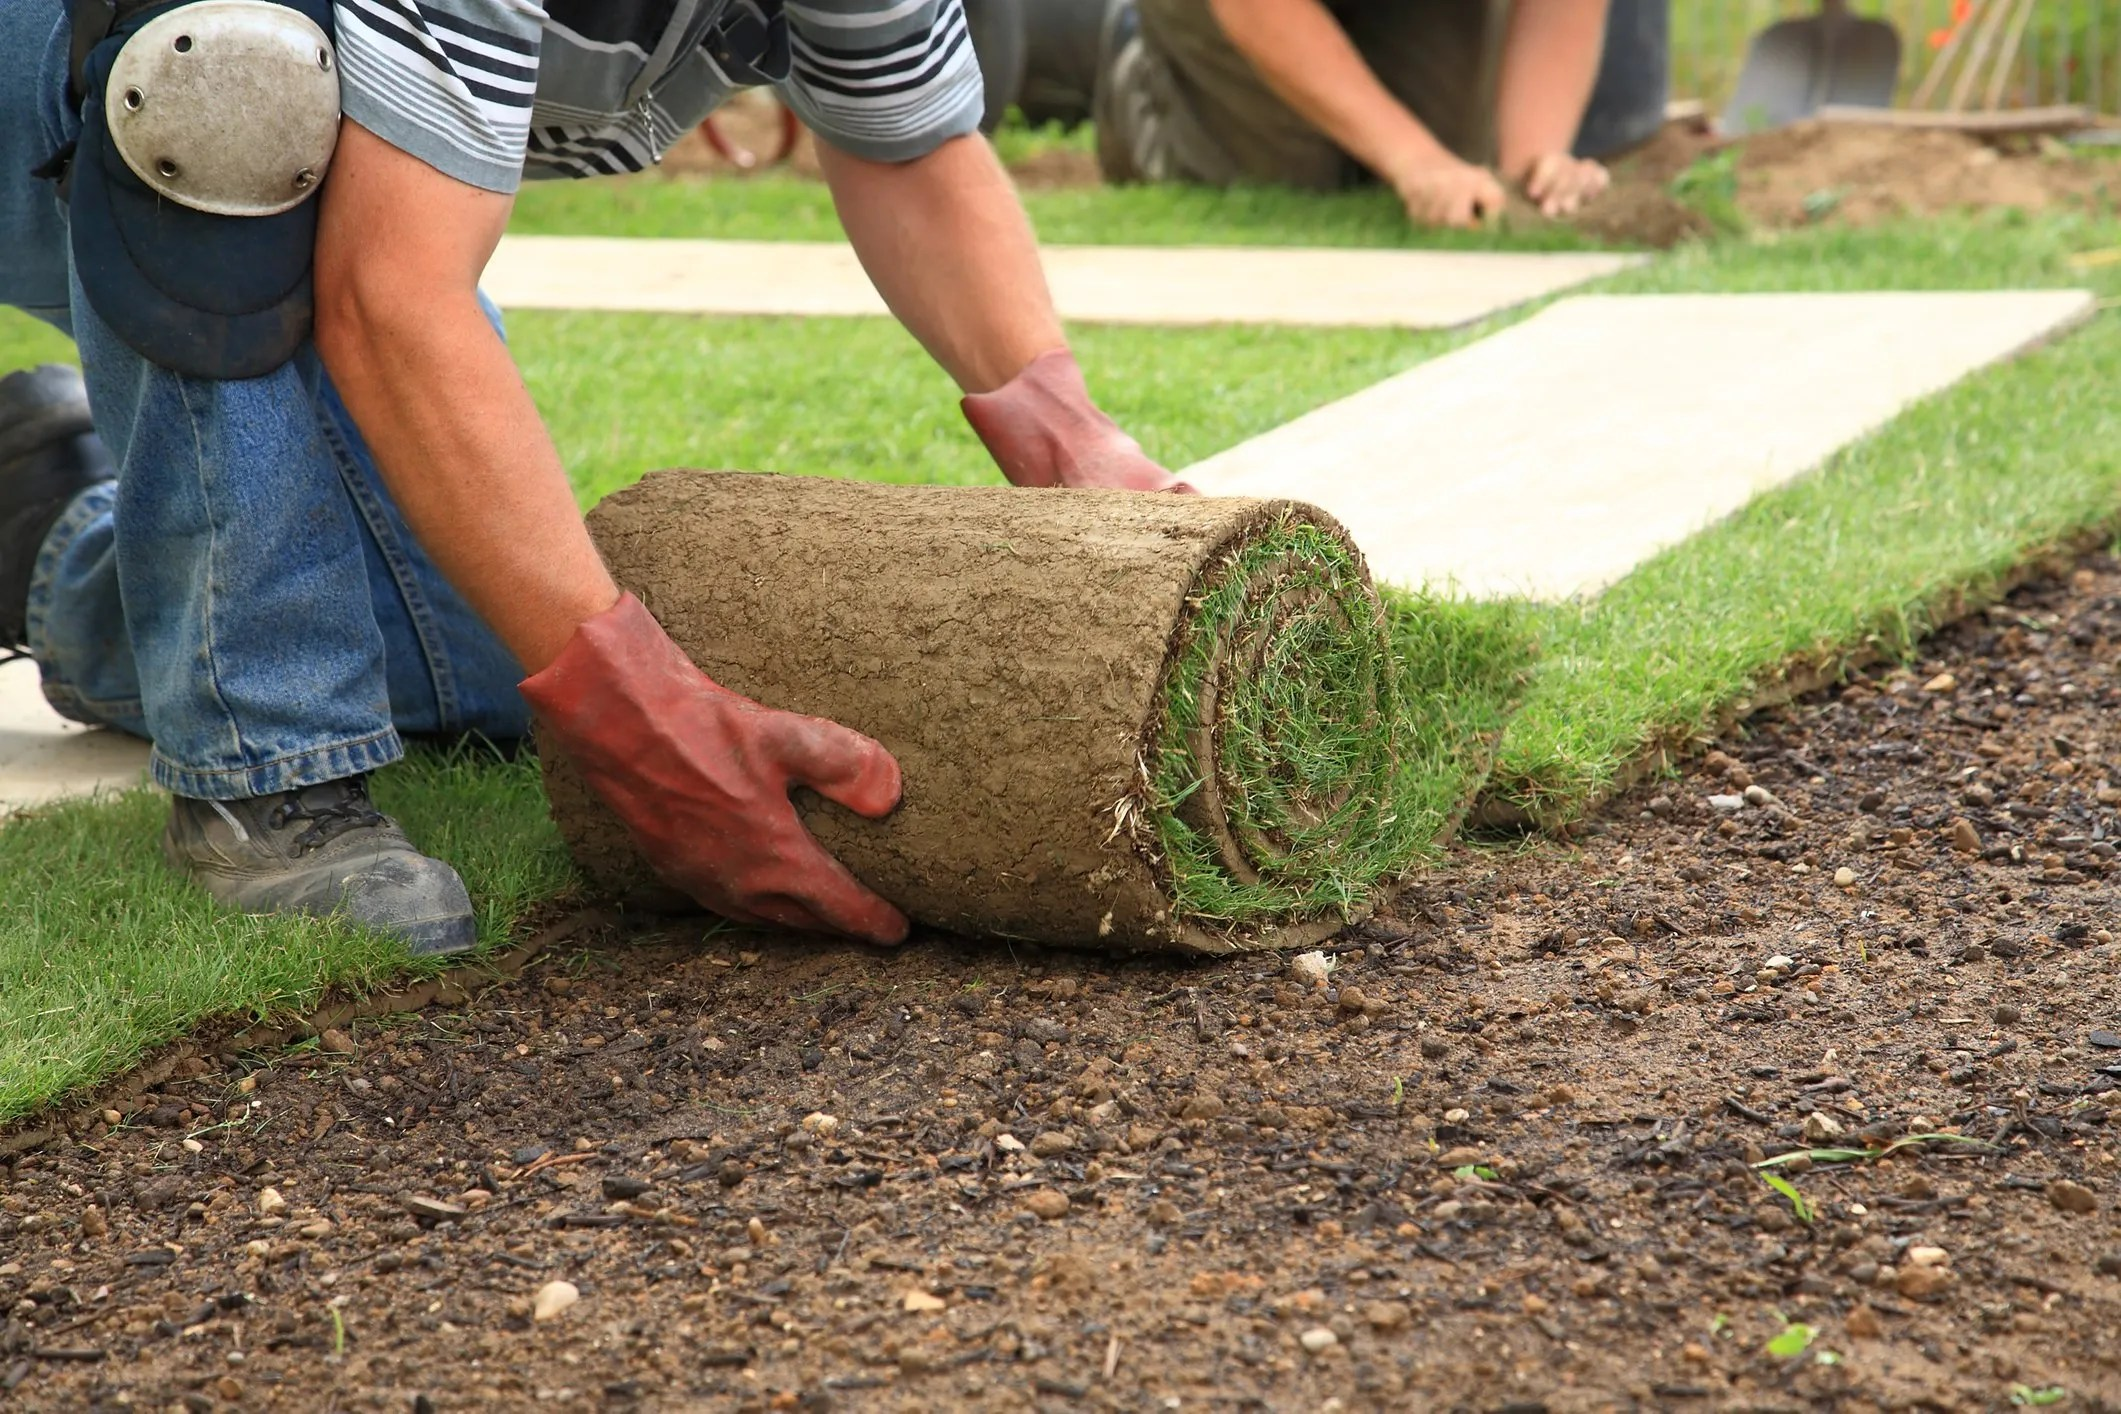 laying-sod-for-new-lawn-13960915